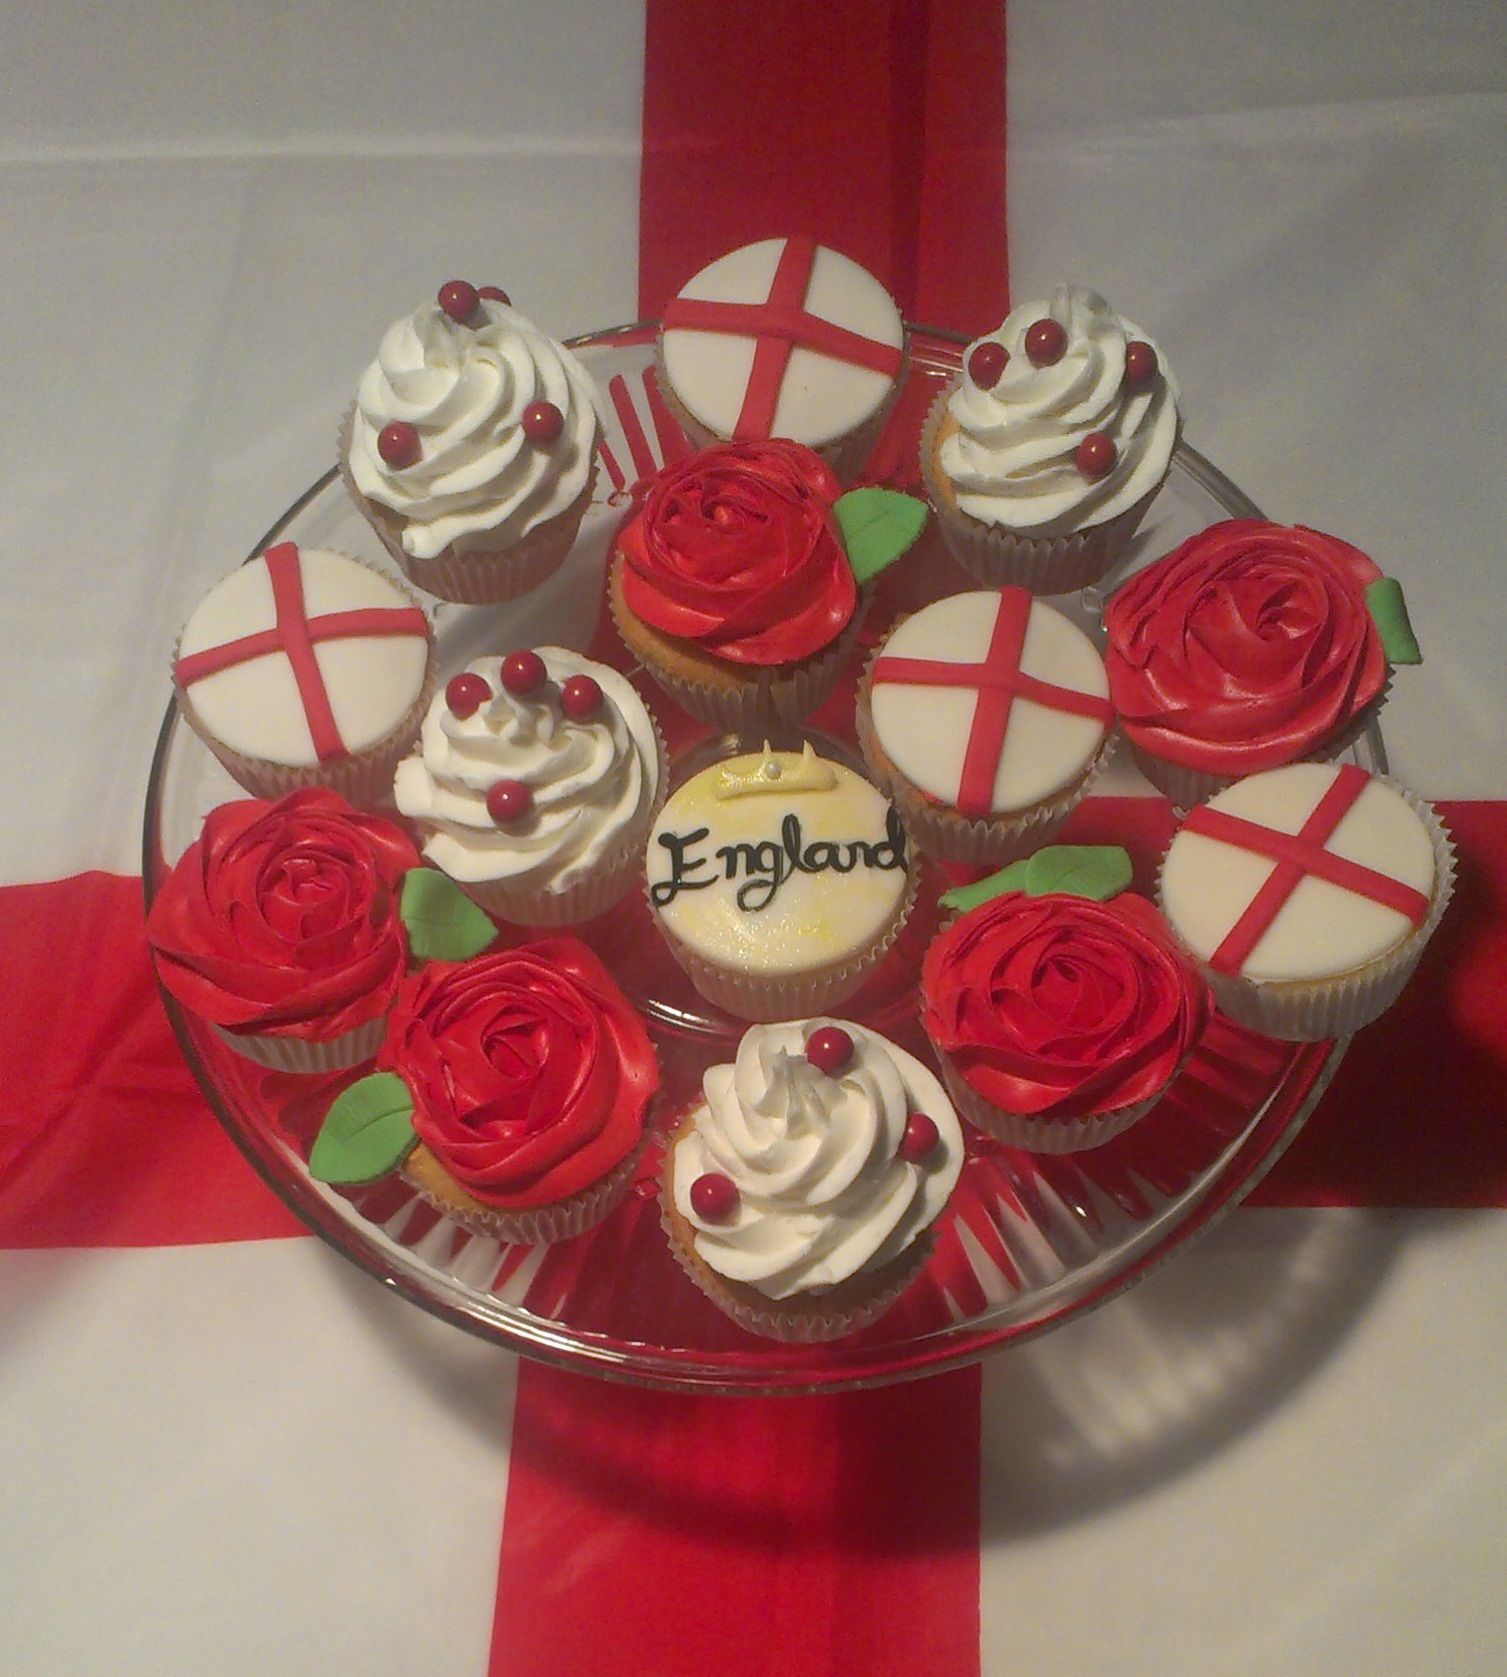 St George's Day Cupcake - For all your cake decorating supplies, please visit craftcompany.co.uk